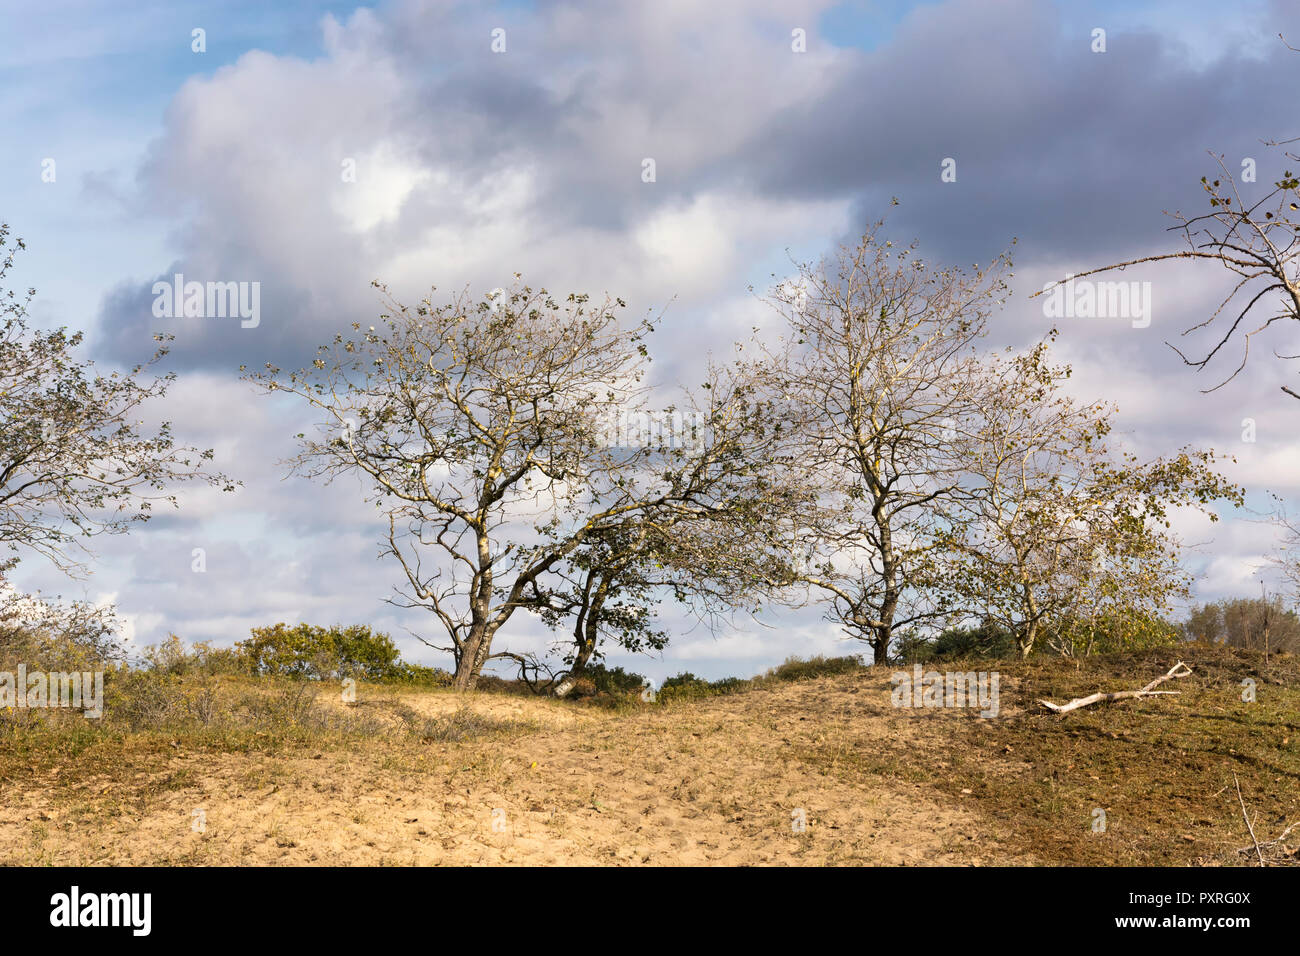 View on trees letting their last leaves go. These trees are in the area of the Waterleidingduinen, a beautiful coastal Dutch nature reserve - Stock Image